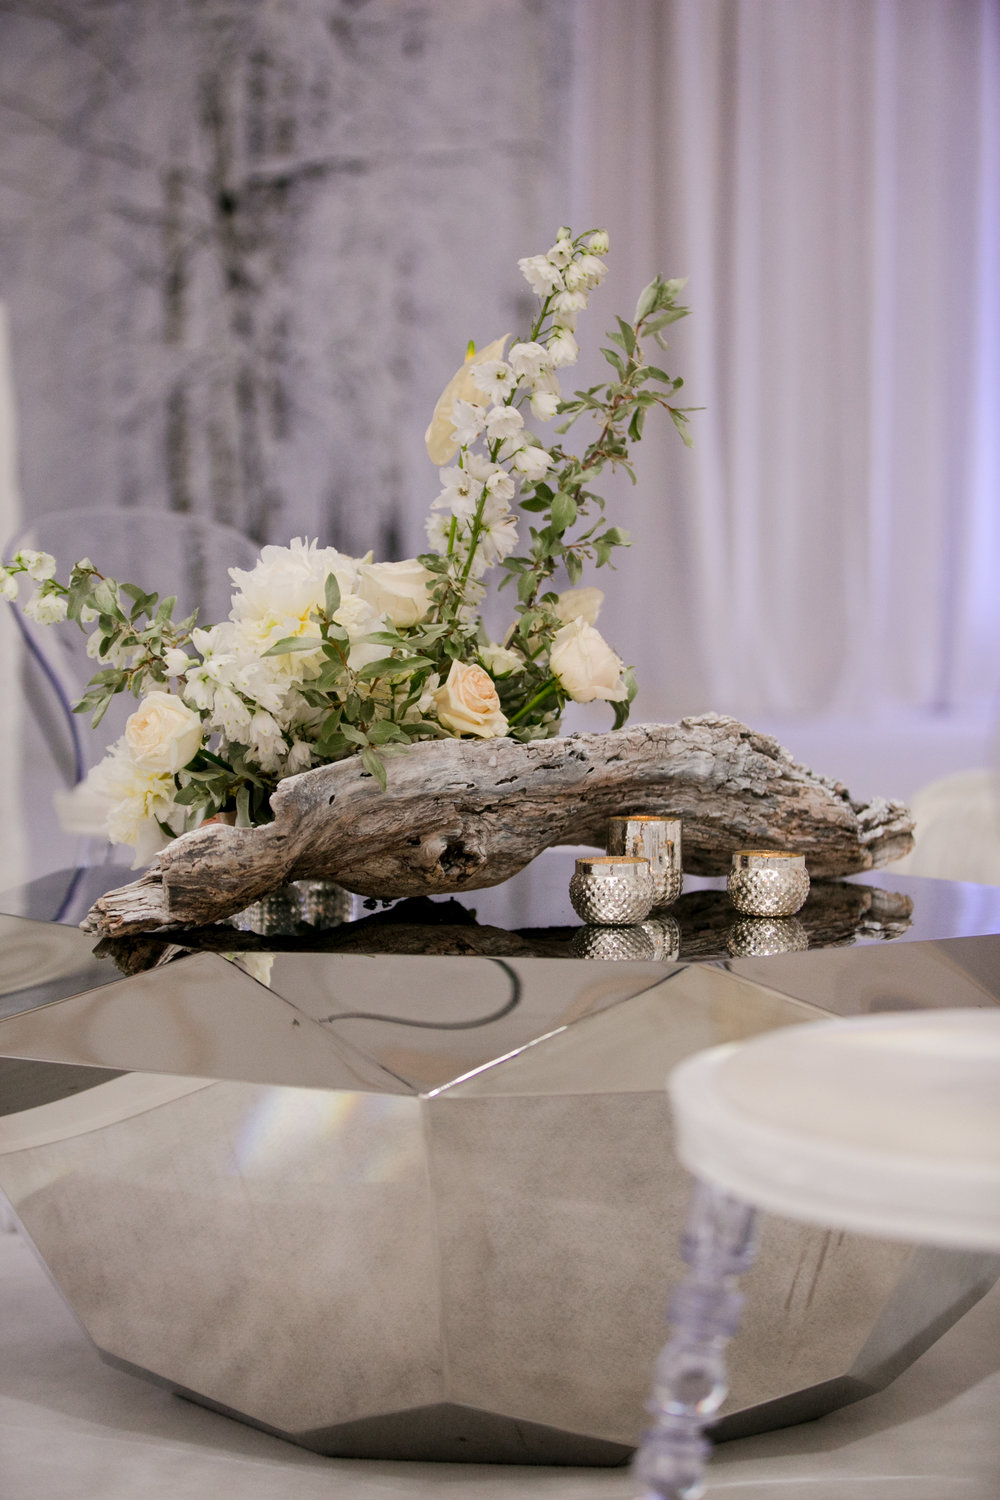 These centerpieces were the perfect blend of rustic and elegant. The white washed birchwood was a beautiful base for the florals.The Engage Gala in Banff Canada. Photo by Genevieve deMaio Photography. Creative Design by Angela Desveaux of Wedluxe. Partners include Revelry Event Designers, Modern Luxe Rentals, West Coast Music, La Tavola Linen, Decor and More, Engineered Arts, and Designer Dance Floors,.